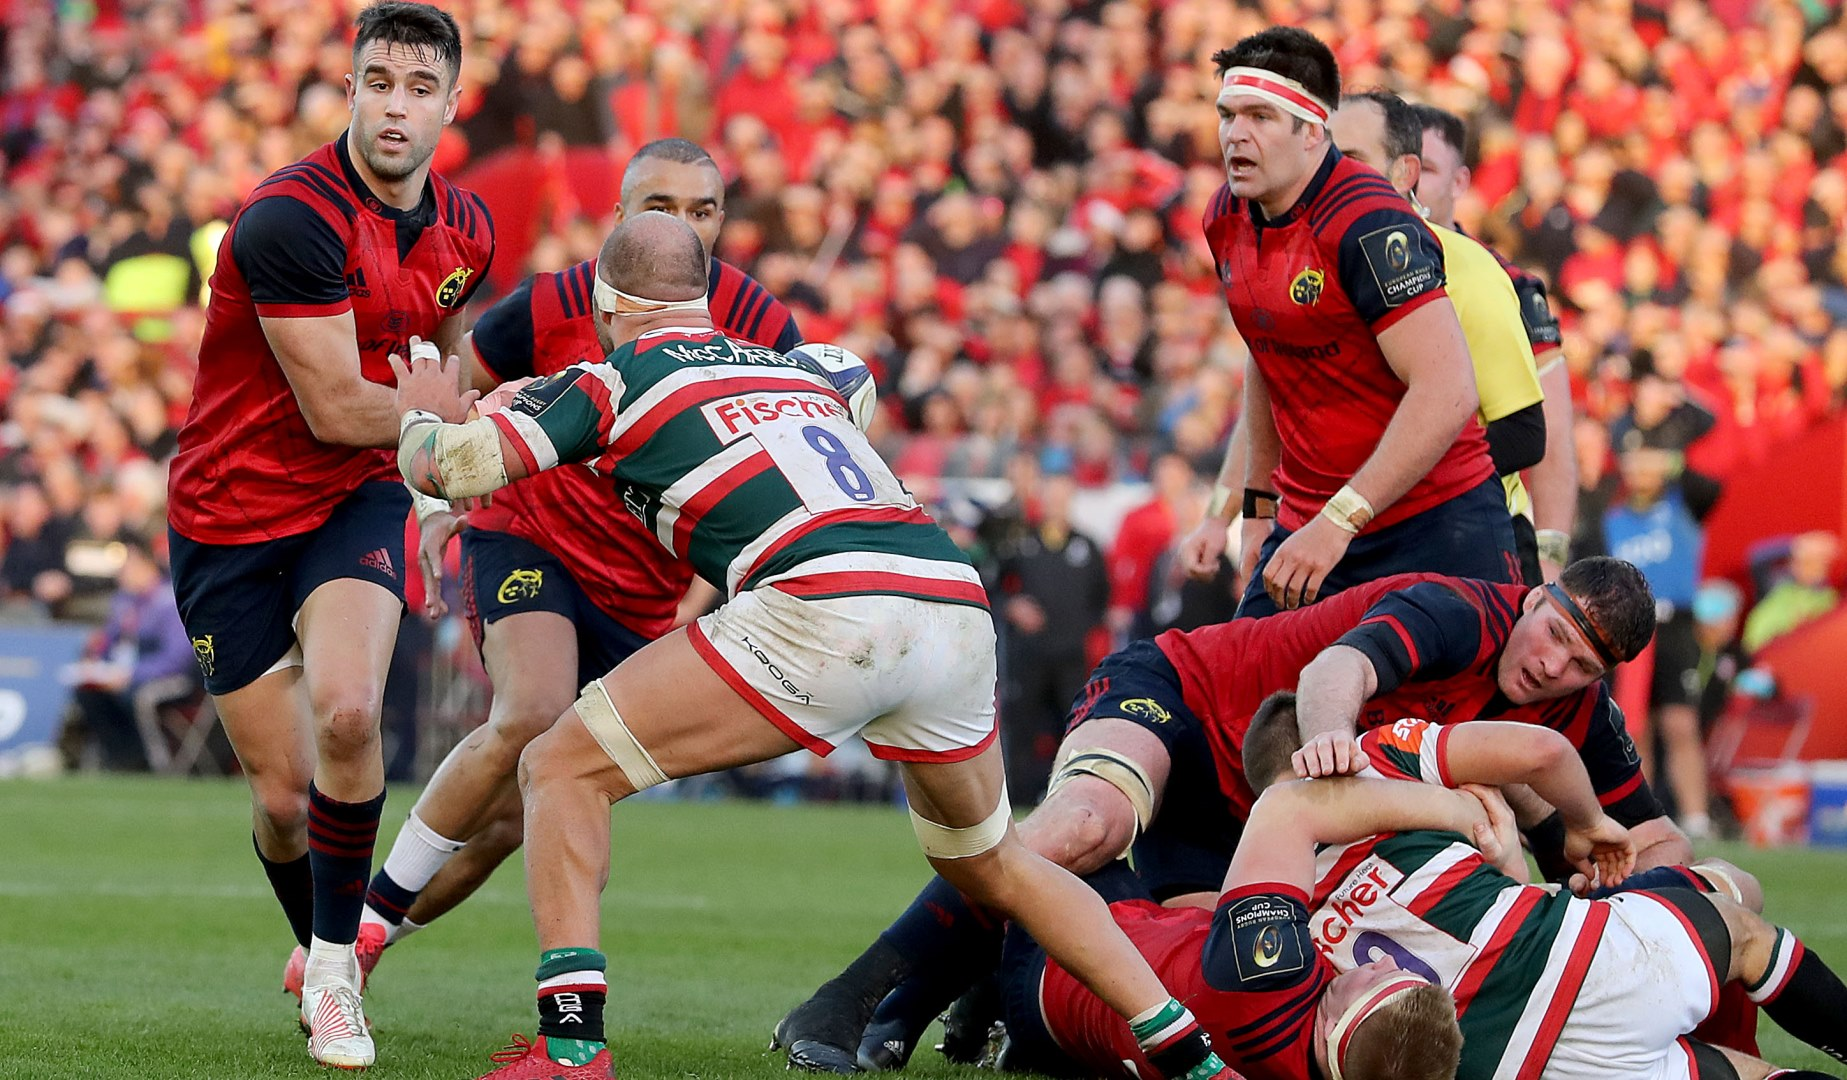 LionsWatch: Murray's magic and Stander's strength keep Munster's streak alive